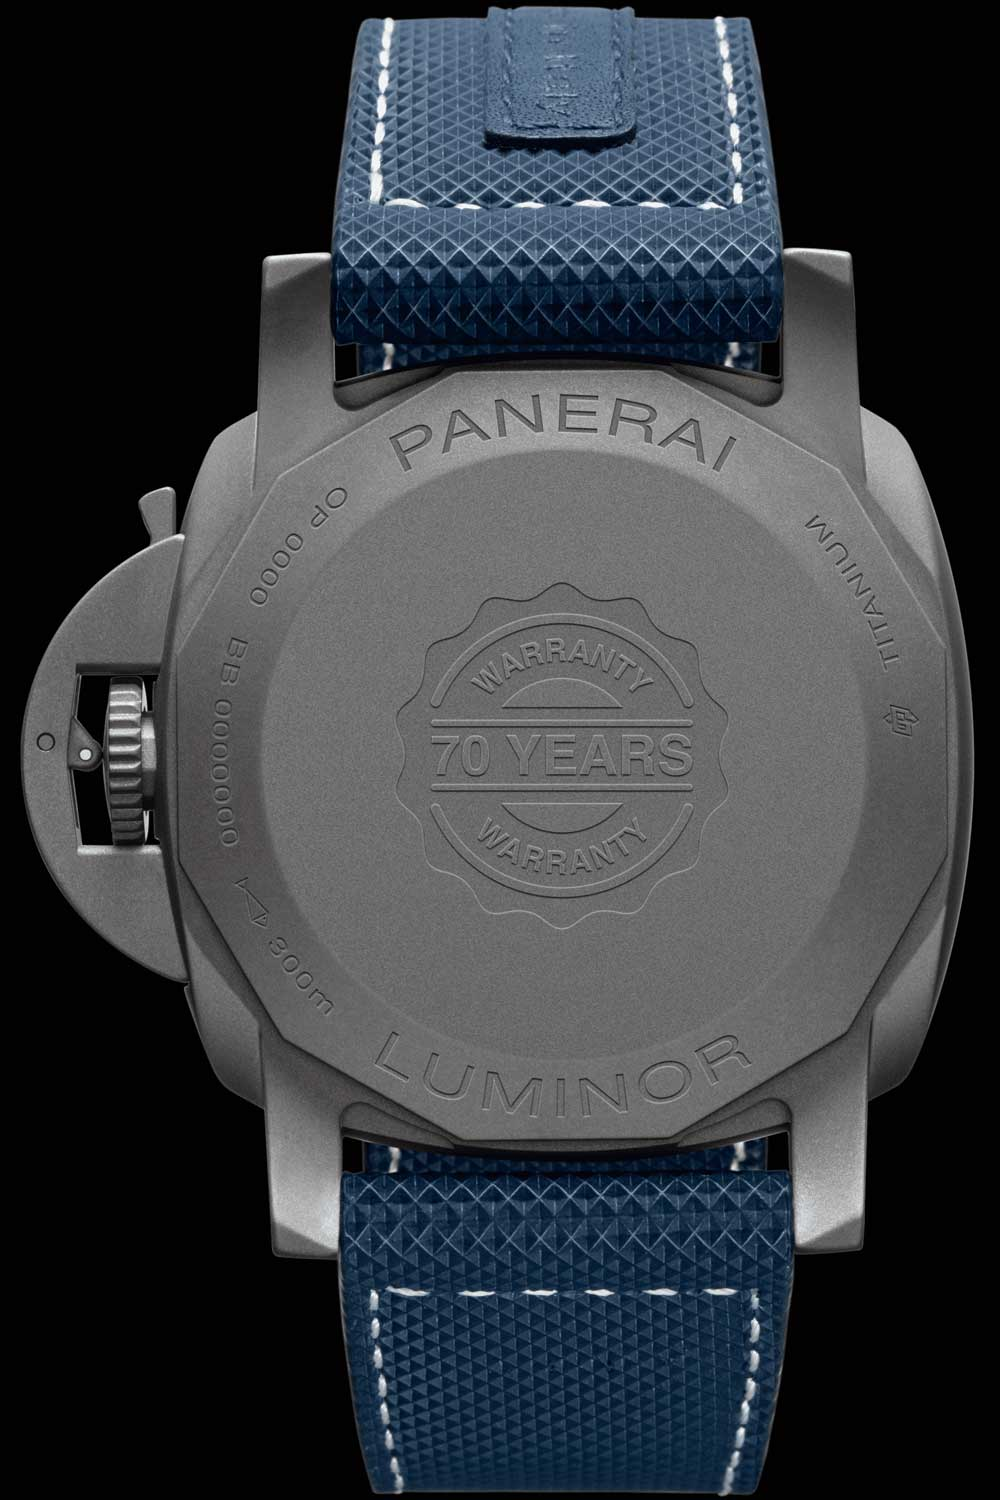 The case back of the watch indicates its 70-Year Warranty Guarantee, as well as 'Panerai Luminor' engraved on the back.